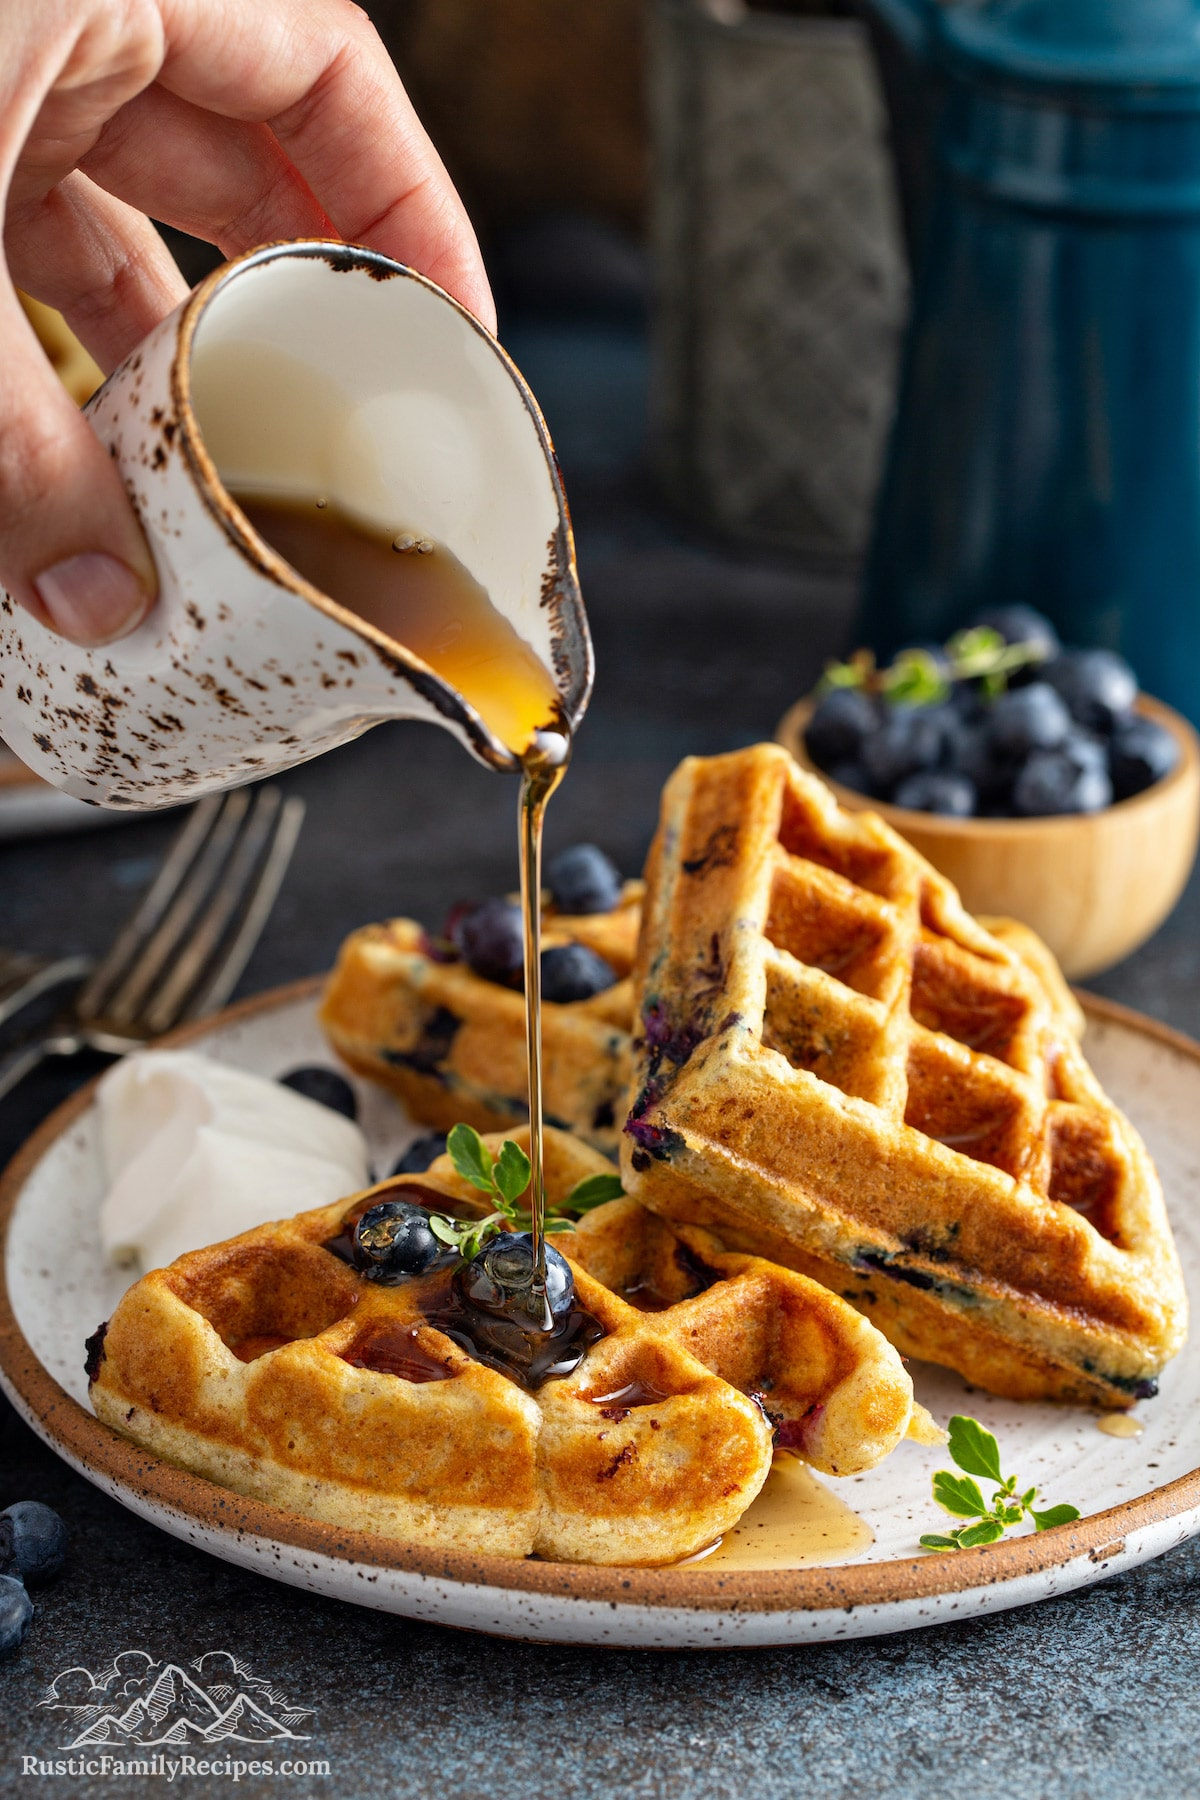 A plate full of fluffy Blueberry Buttermilk Waffles topped with blueberries and being drizzled with maple syrup.